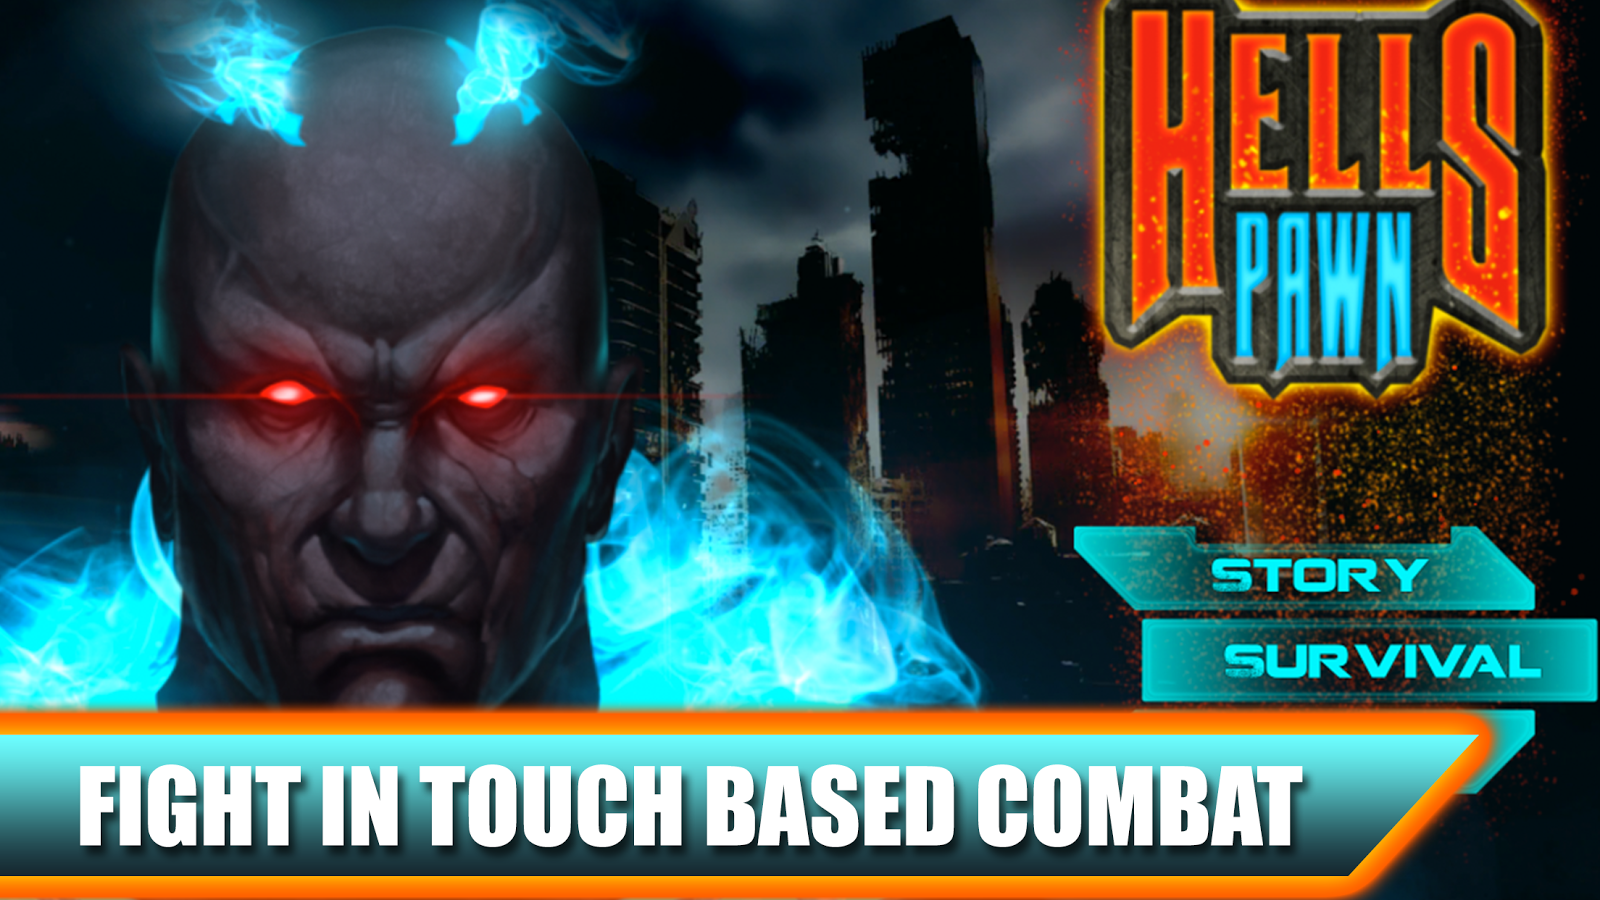 HELLS PAWN : 3D ACTION GAME- screenshot